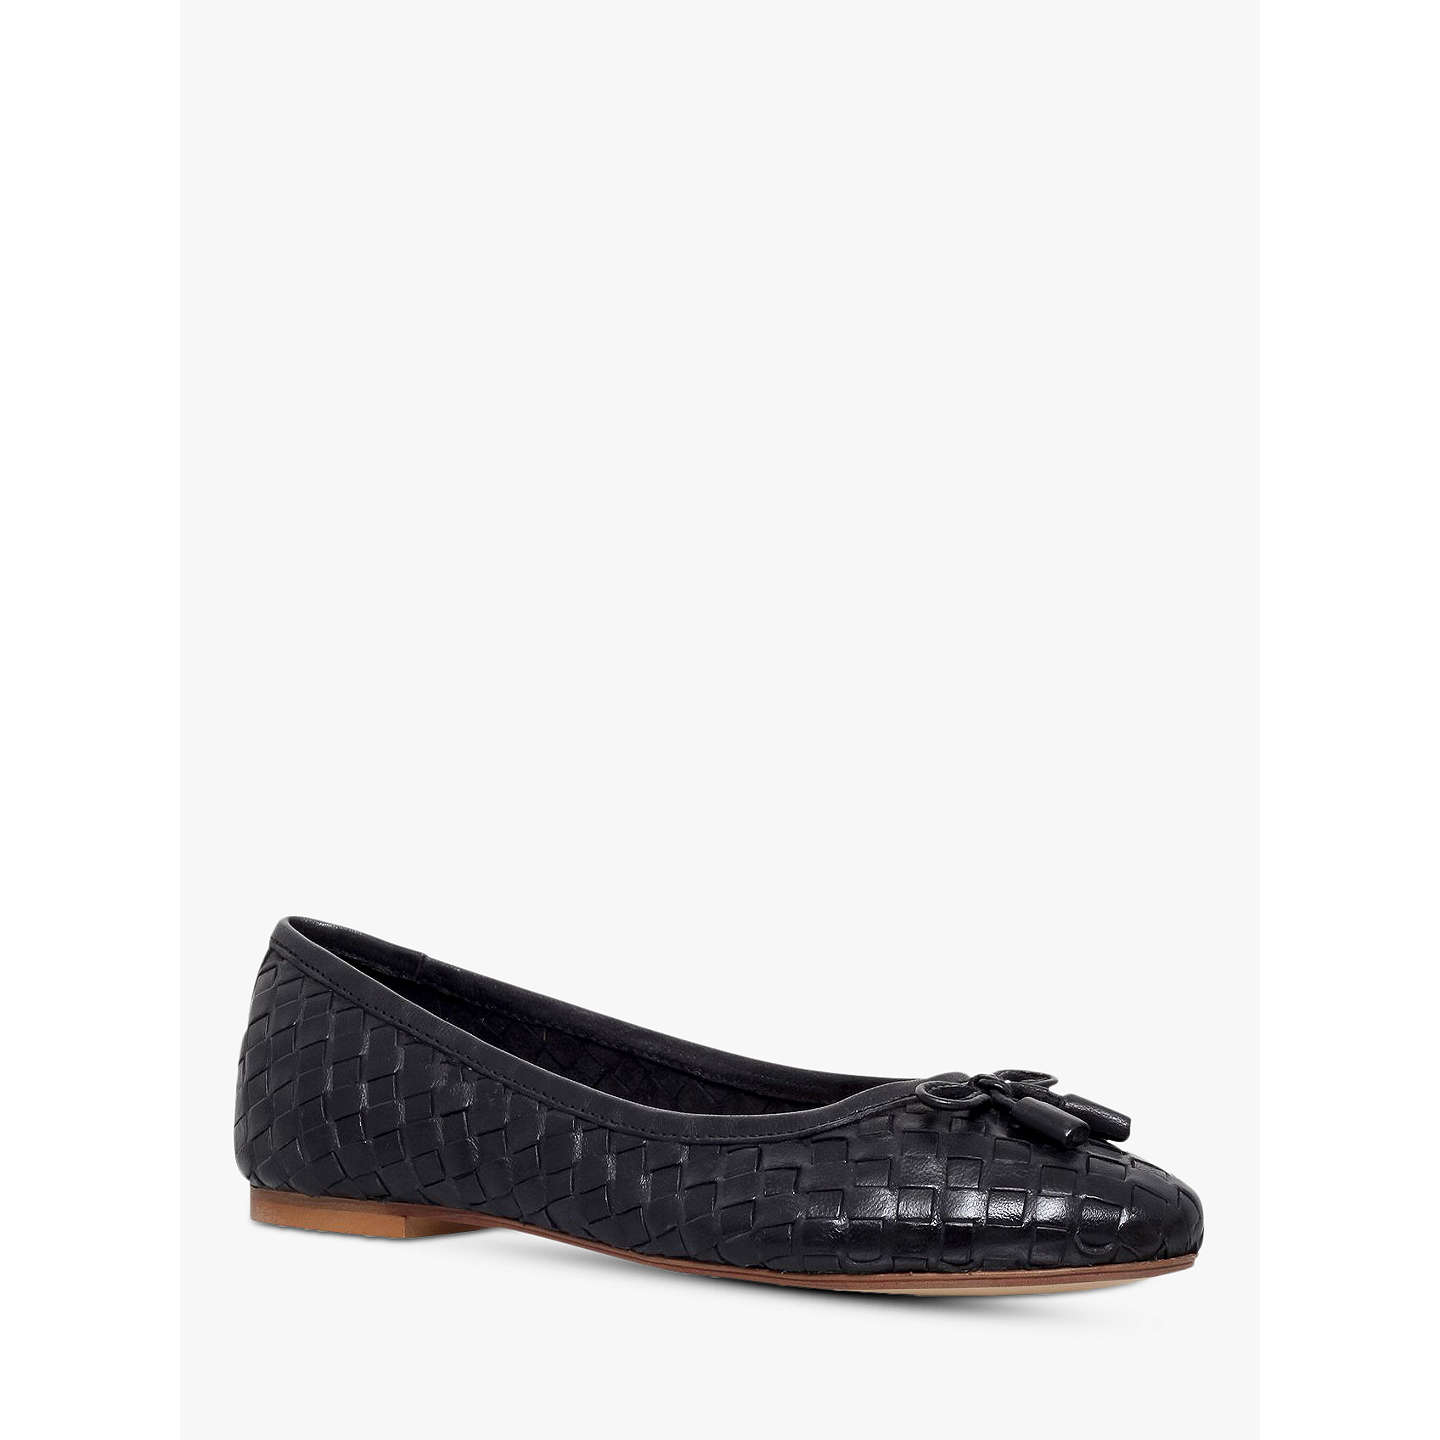 BuyCarvela Luggage Woven Leather Ballerina Pumps, Black, 3 Online at  johnlewis.com ...